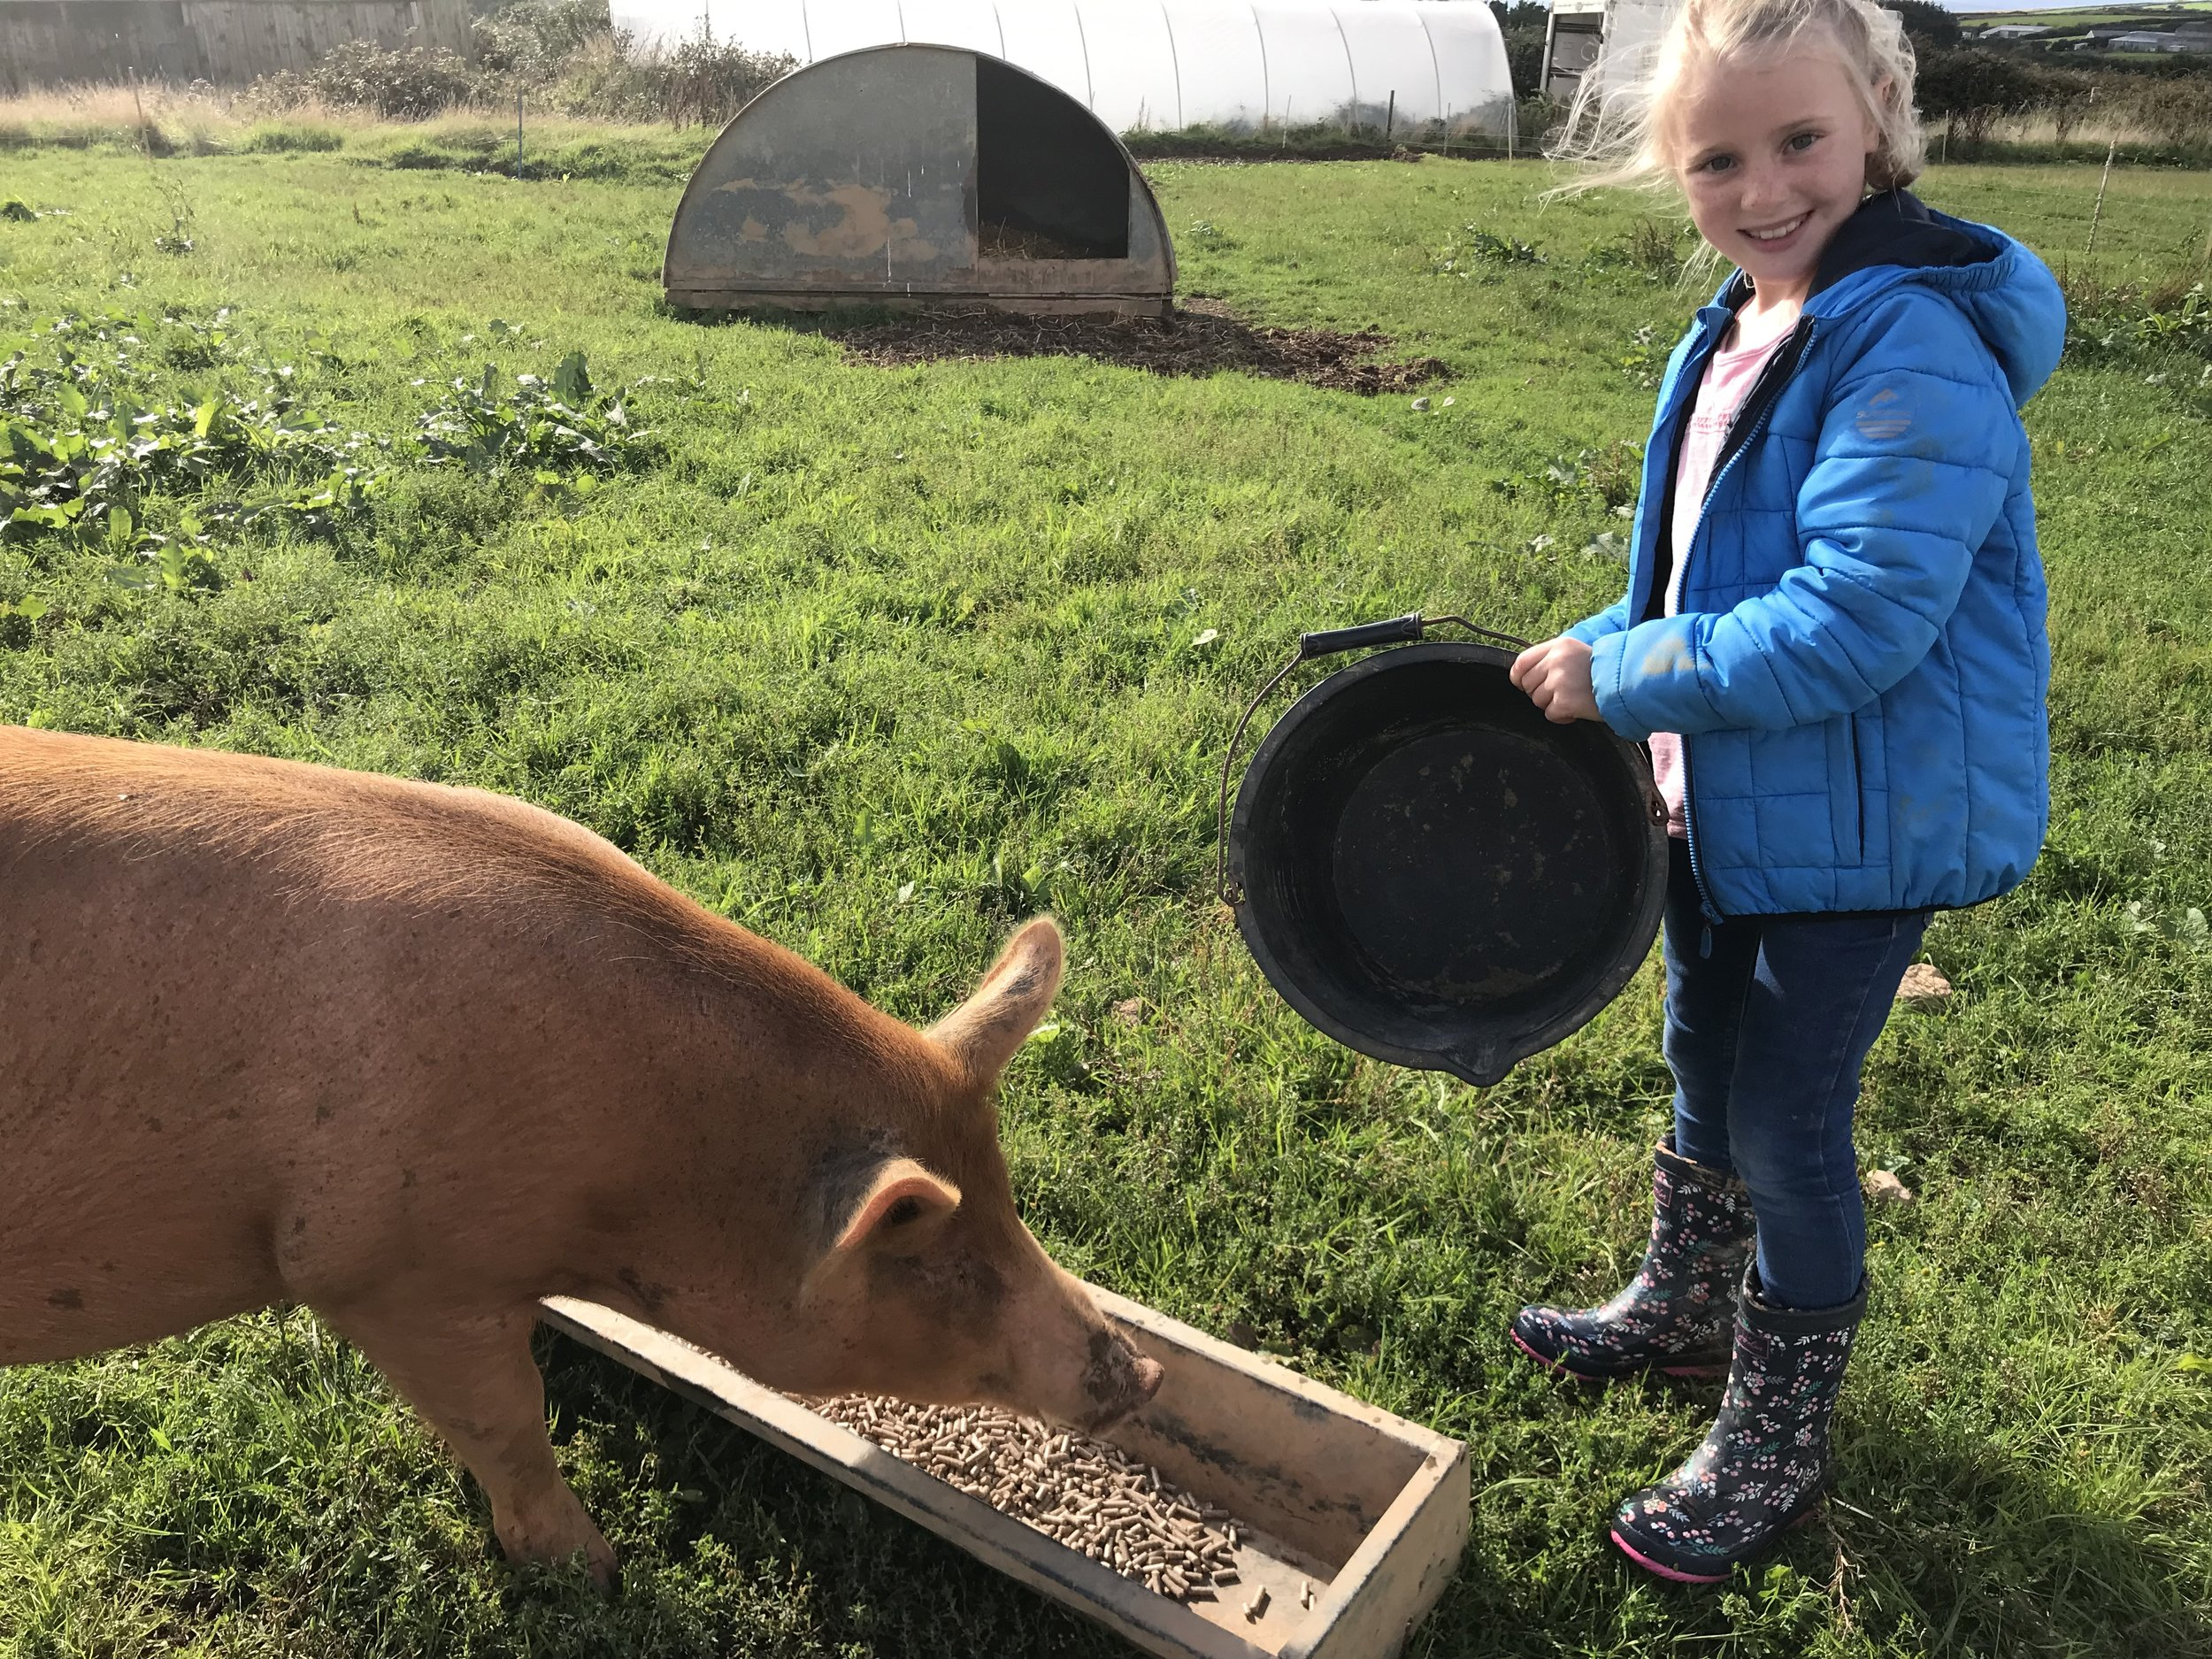 Pig feeding to finish off the day!